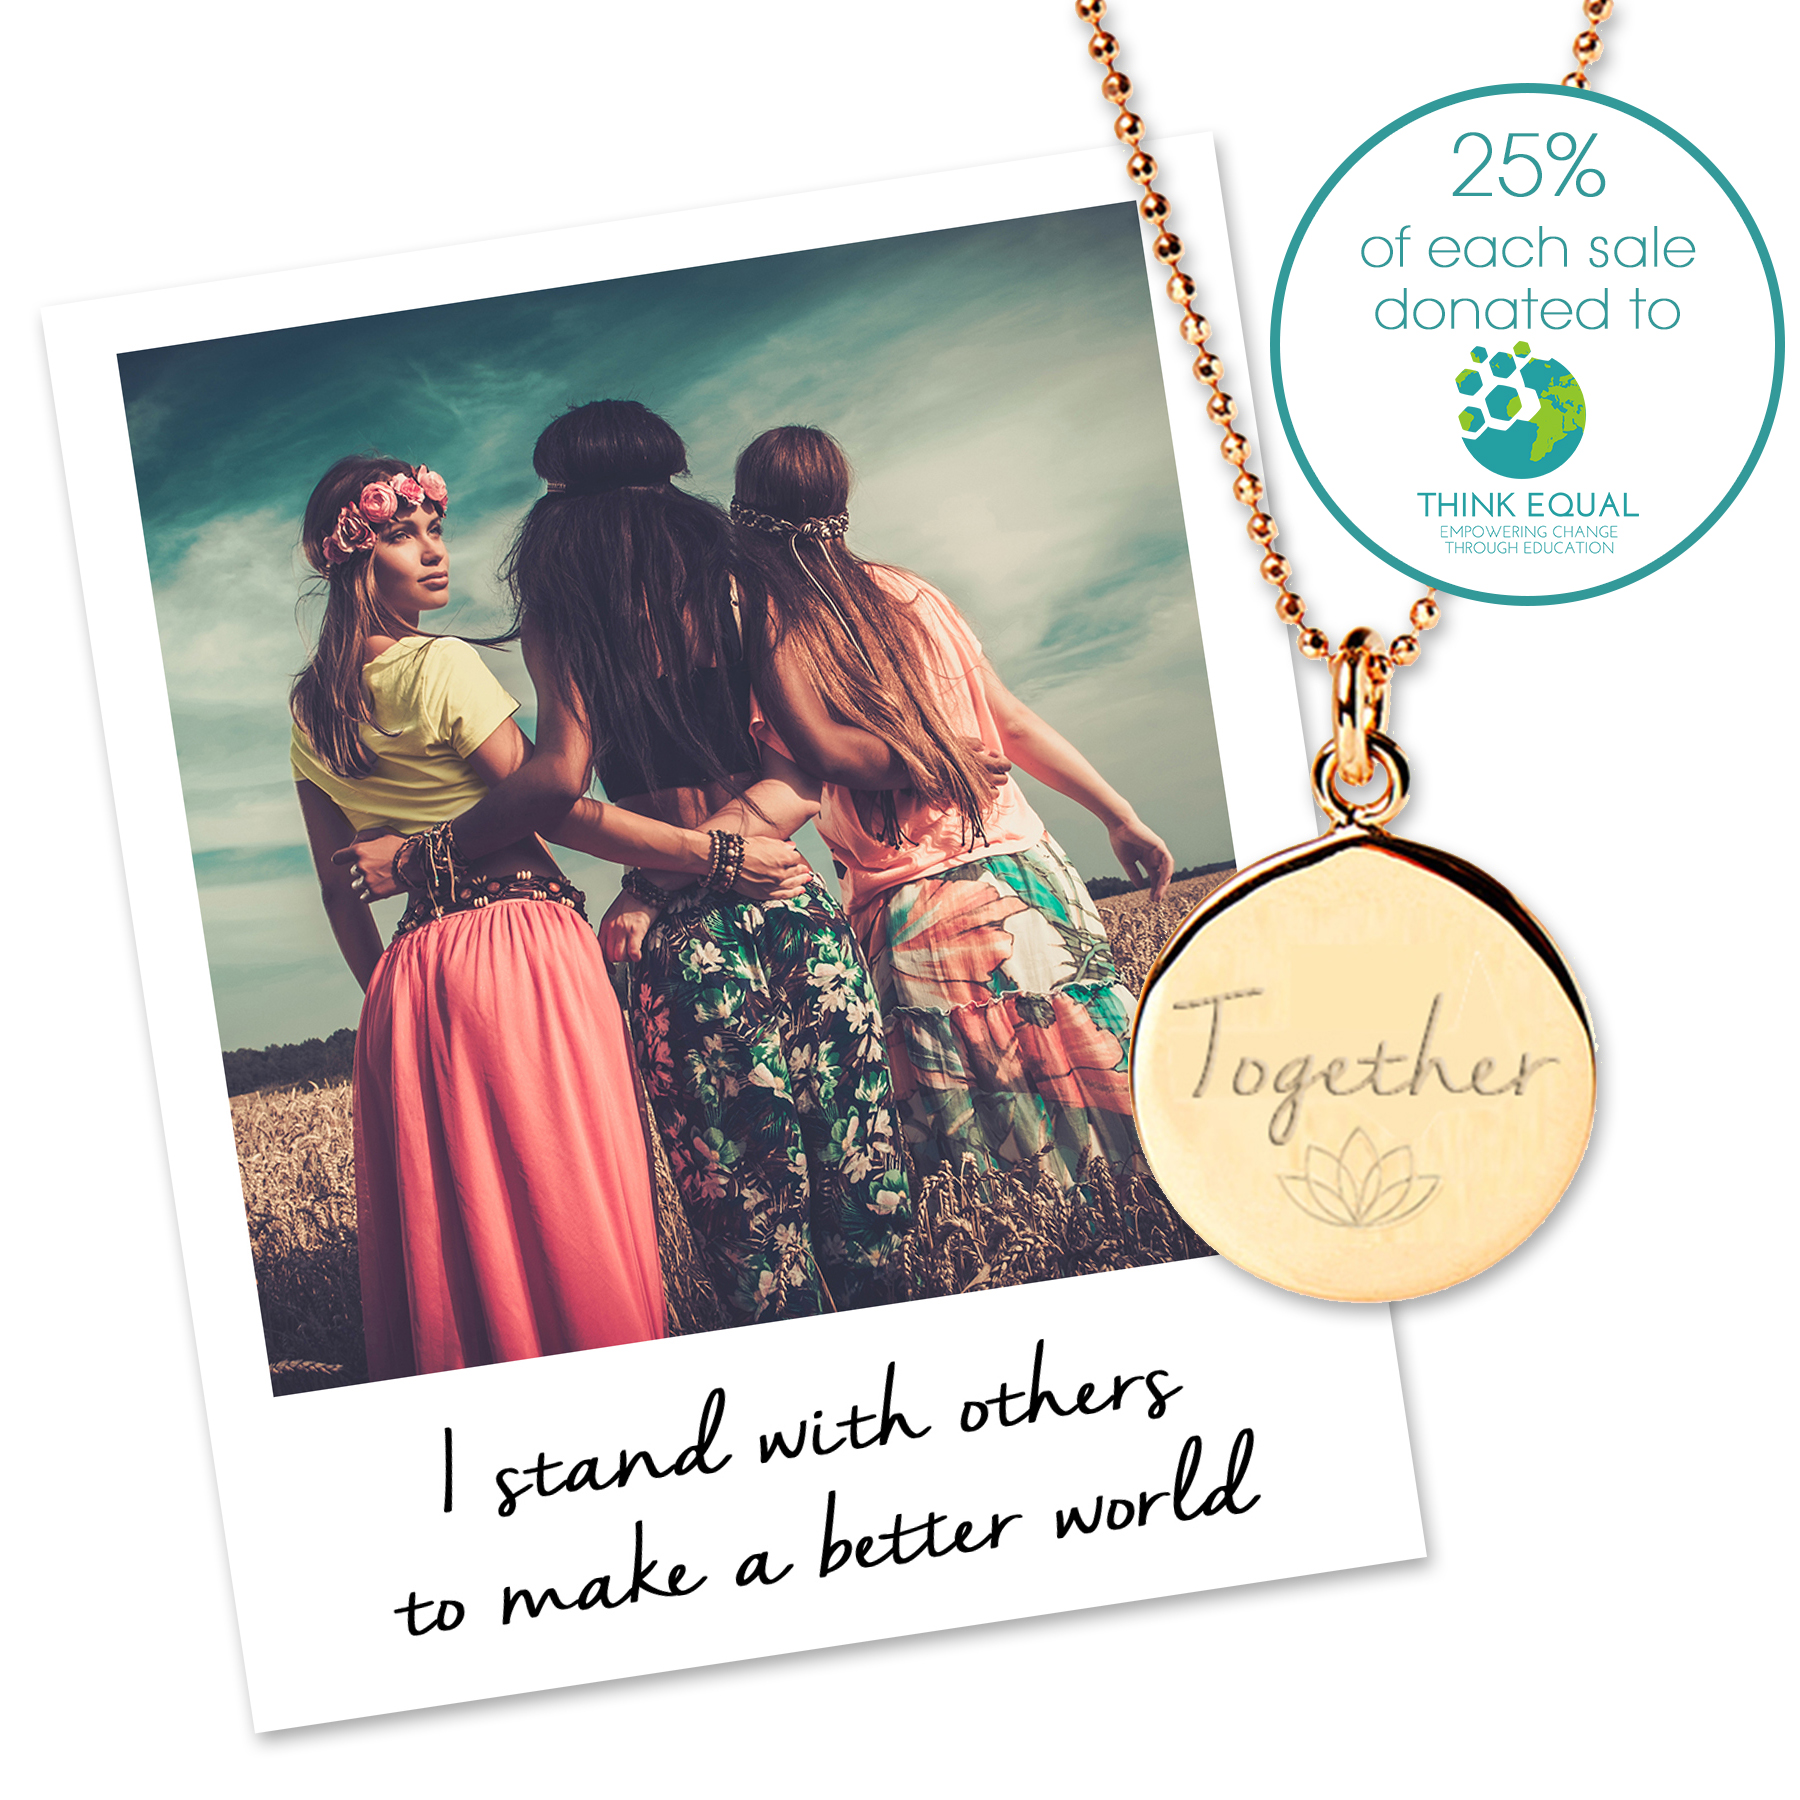 Together Charity Necklace for Think Equal Charity